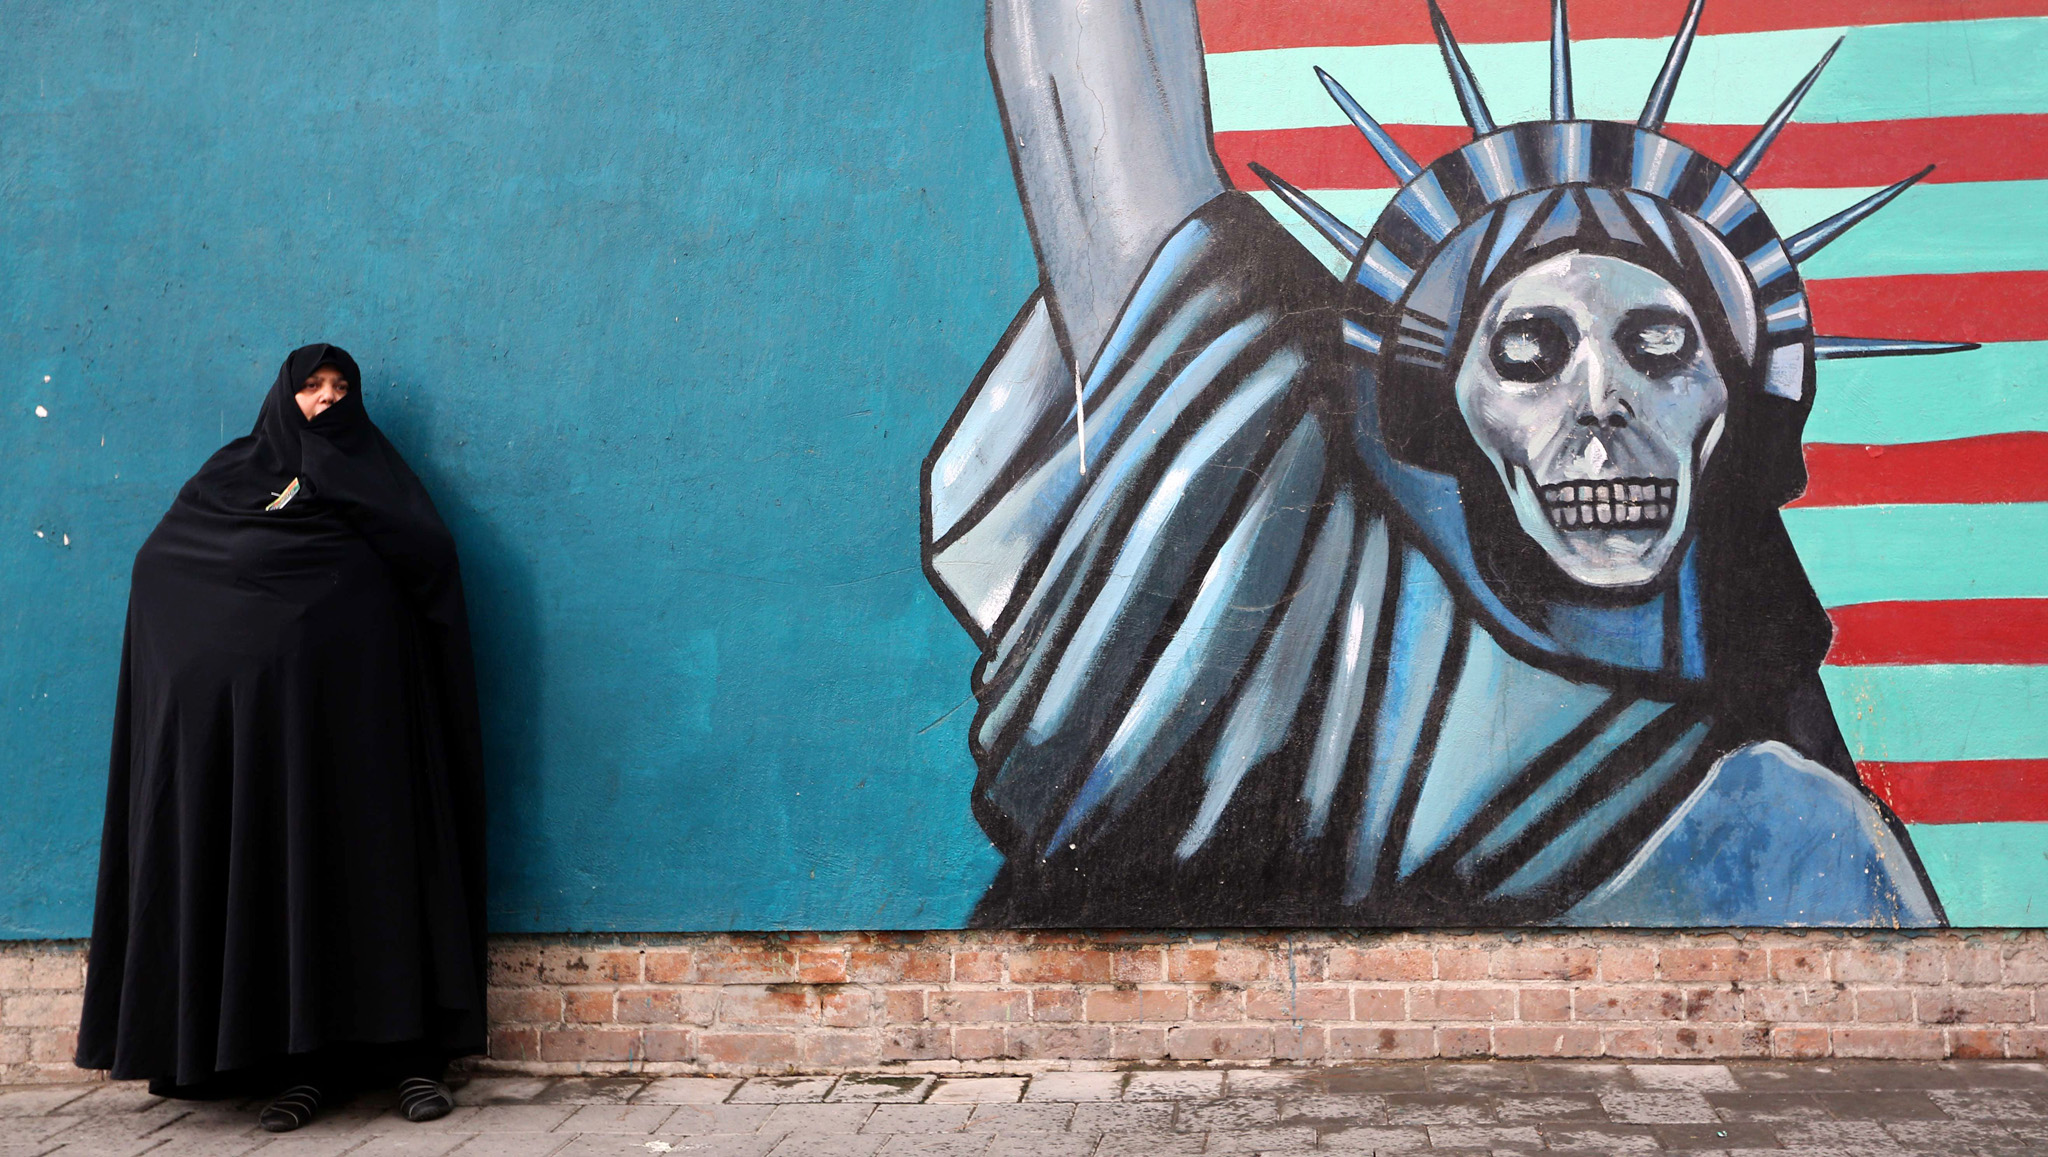 "An Iranian woman stands in front of the painted wall of the former US embassy on November 4, 2014 in Tehran where takes place a demonstration to mark the anniversary of its storming by student protesters that triggered a hostage crisis. Thousands of Iranians shouted ""Death to America"" during the demonstration, 35 years after Islamist students stormed the embassy compound, holding 52 American diplomats hostage for 444 days. The painting shows the Statue of Liberty with a skull as a face."